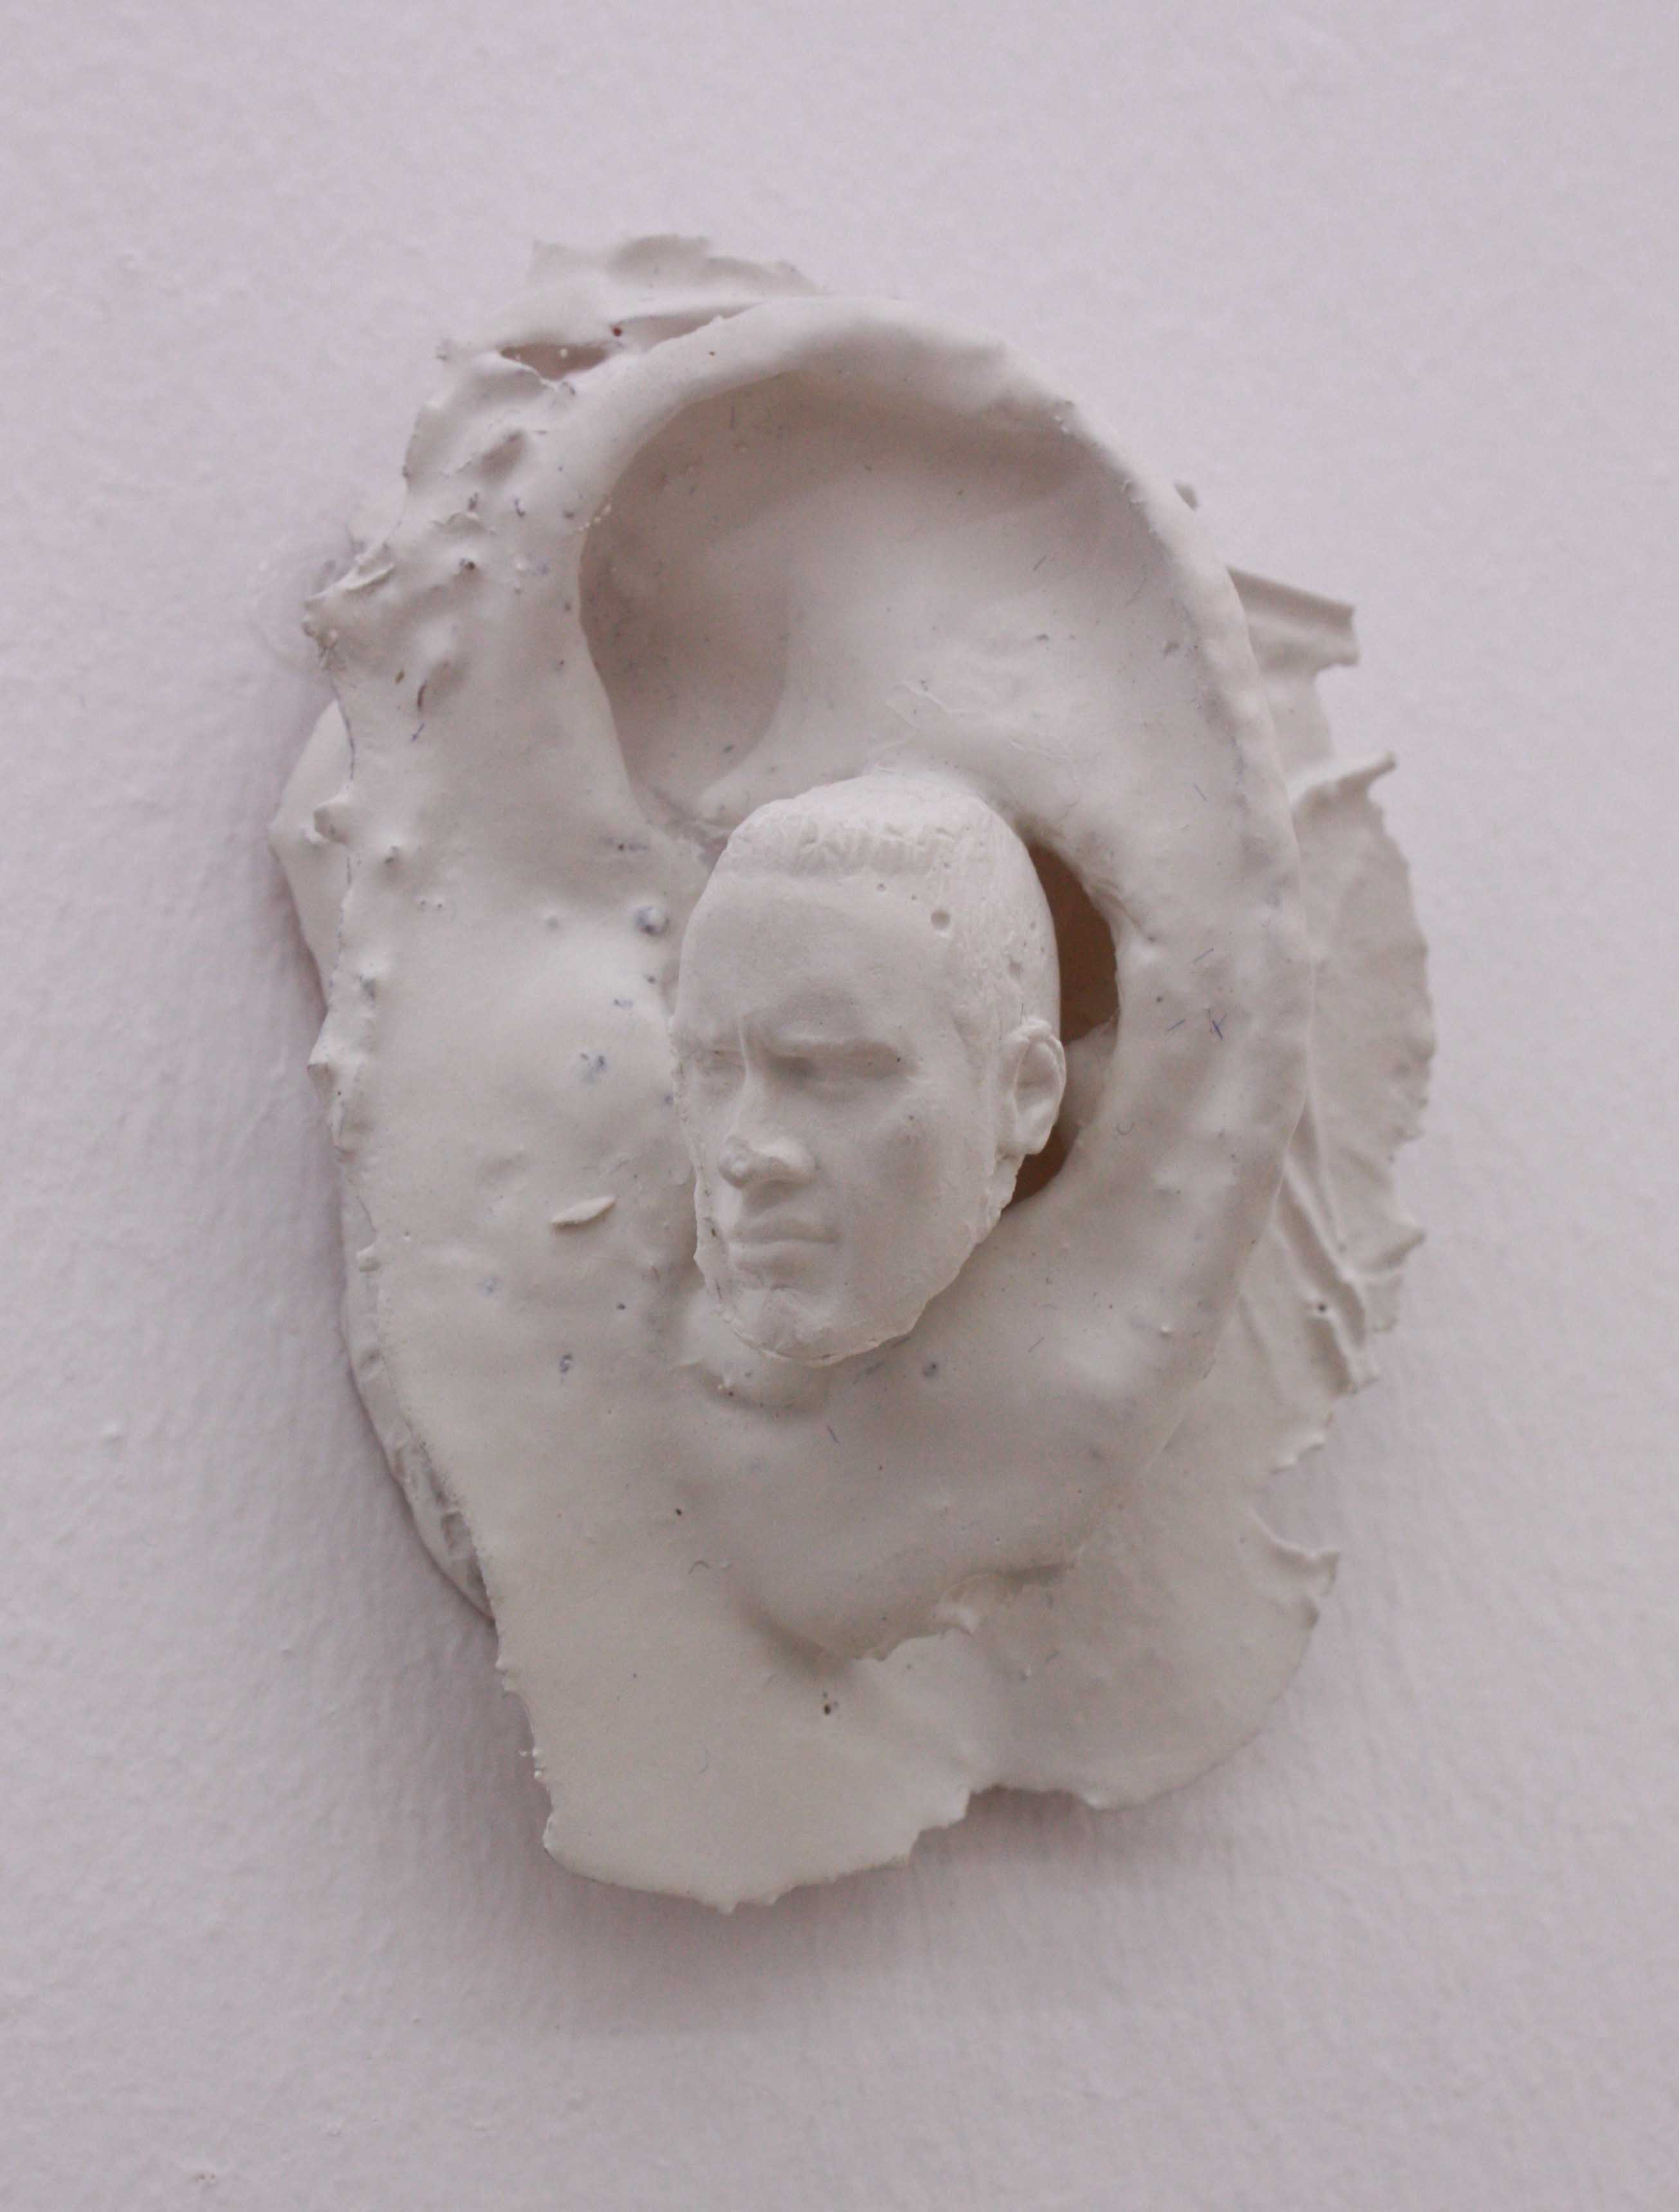 Untitled, 2018, Plaster & rasin, 6 x 7 x 4 cm